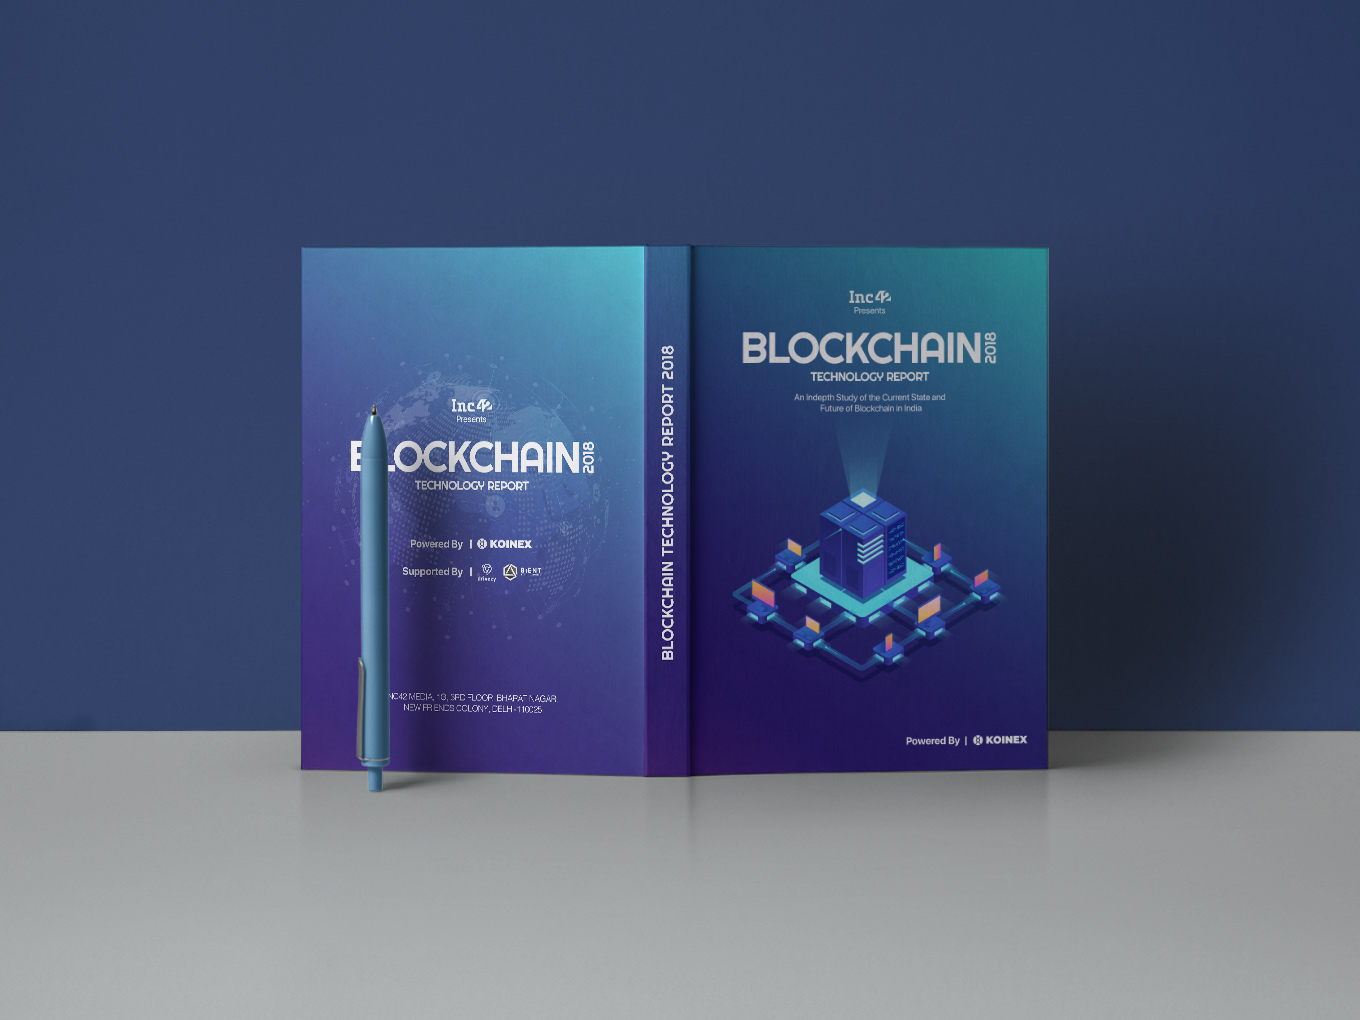 Inc42's Blockchain Technology Report 2018: Demystifying The Hottest Technology Of The Moment